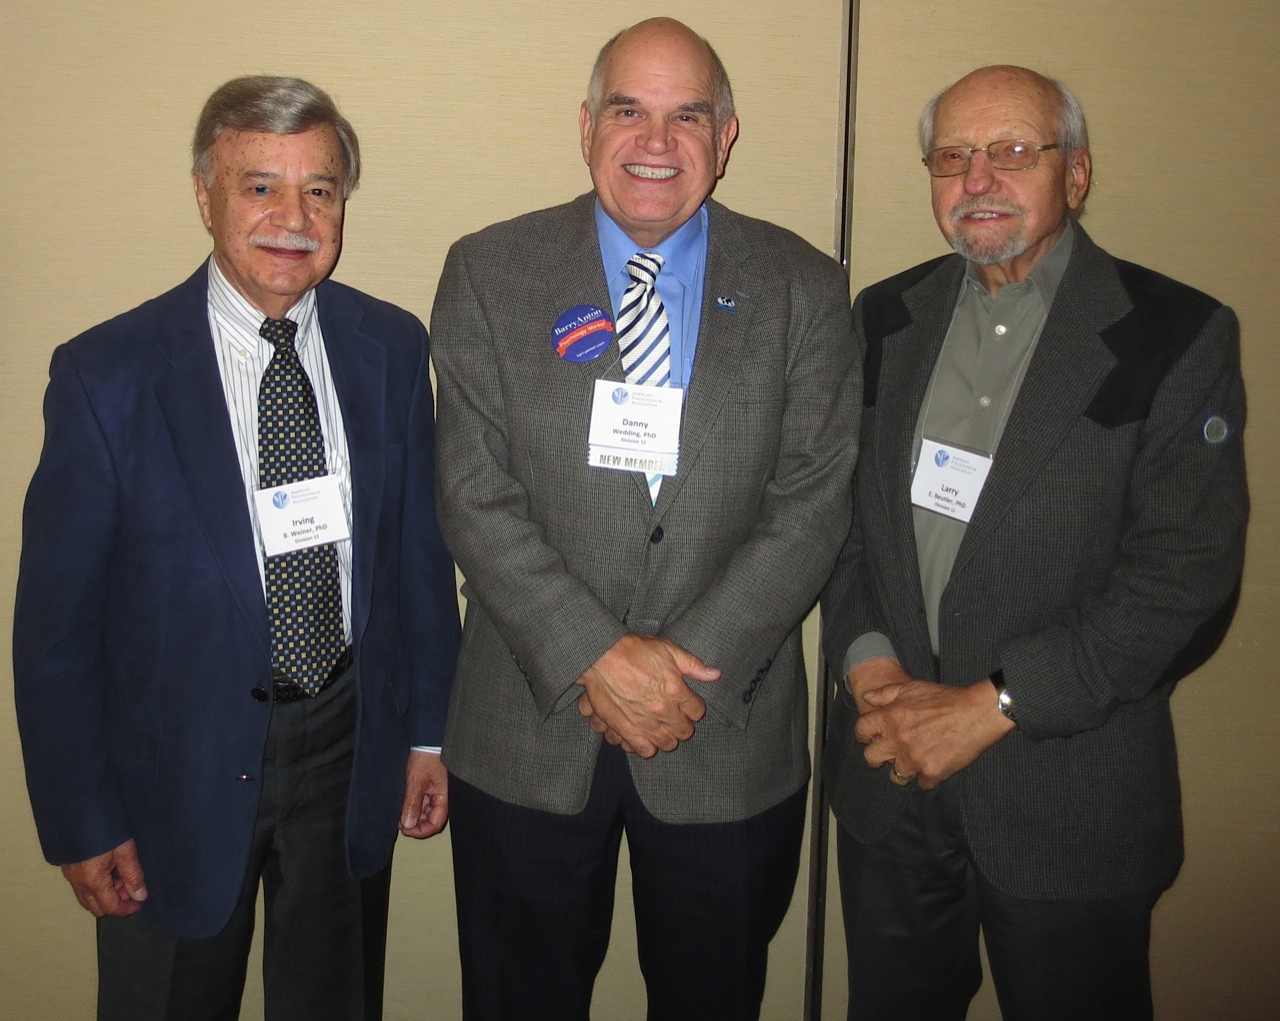 [left to right] Irving Weiner, Ph.D., Danny Wedding, Ph.D., Larry Beutler, Ph.d